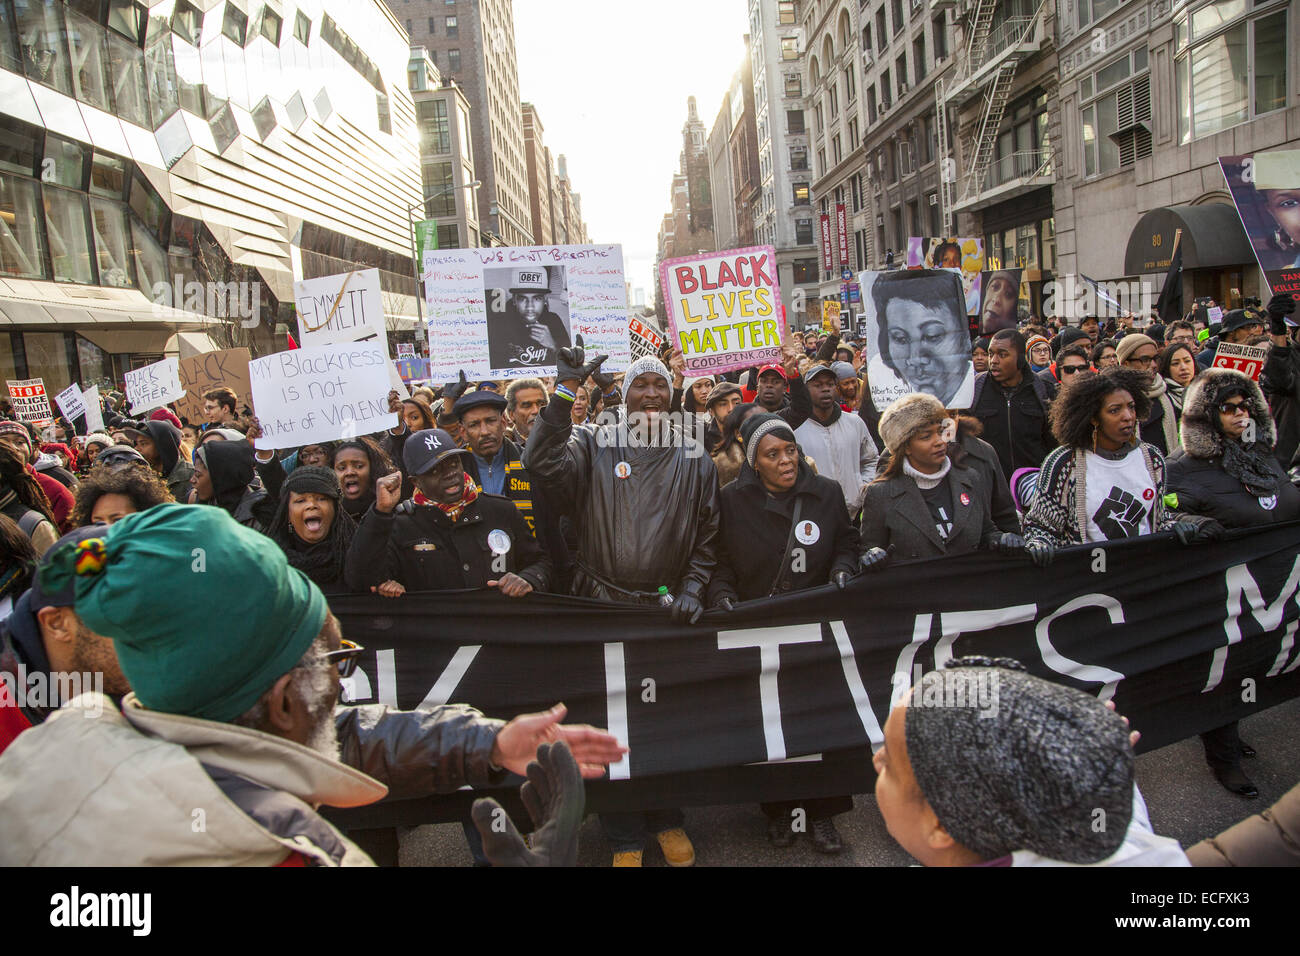 New York, USA. 13th Dec, 2014. Sparked by the Grand Jury verdicts in Ferguson and the Eric Garner murder in NYC, - Stock Image